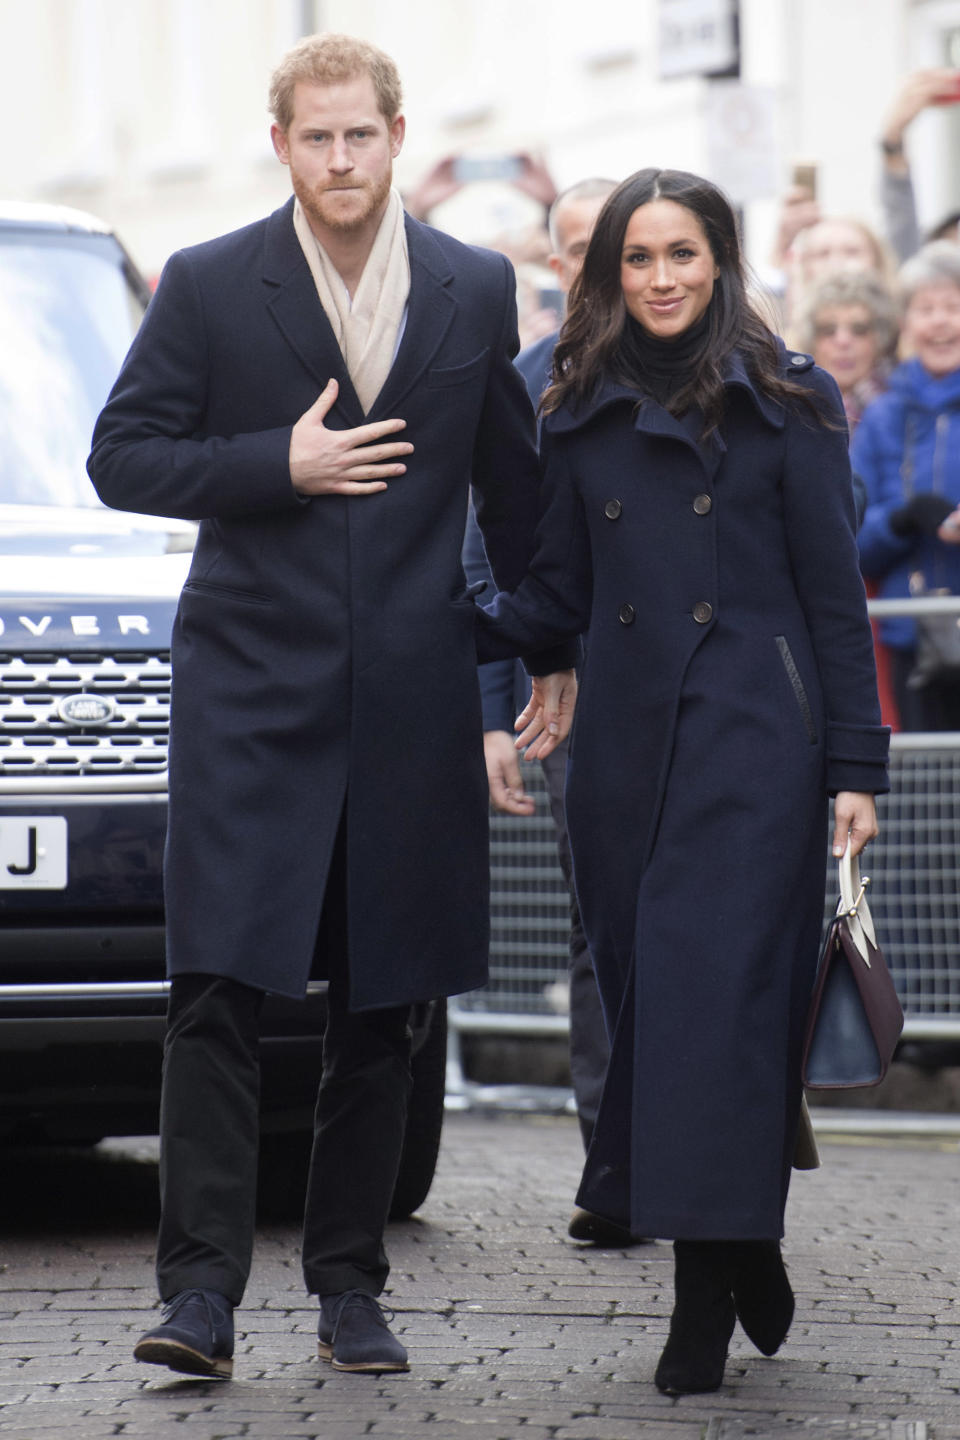 Should Prince Harry get a prenup? [Photo: Getty]